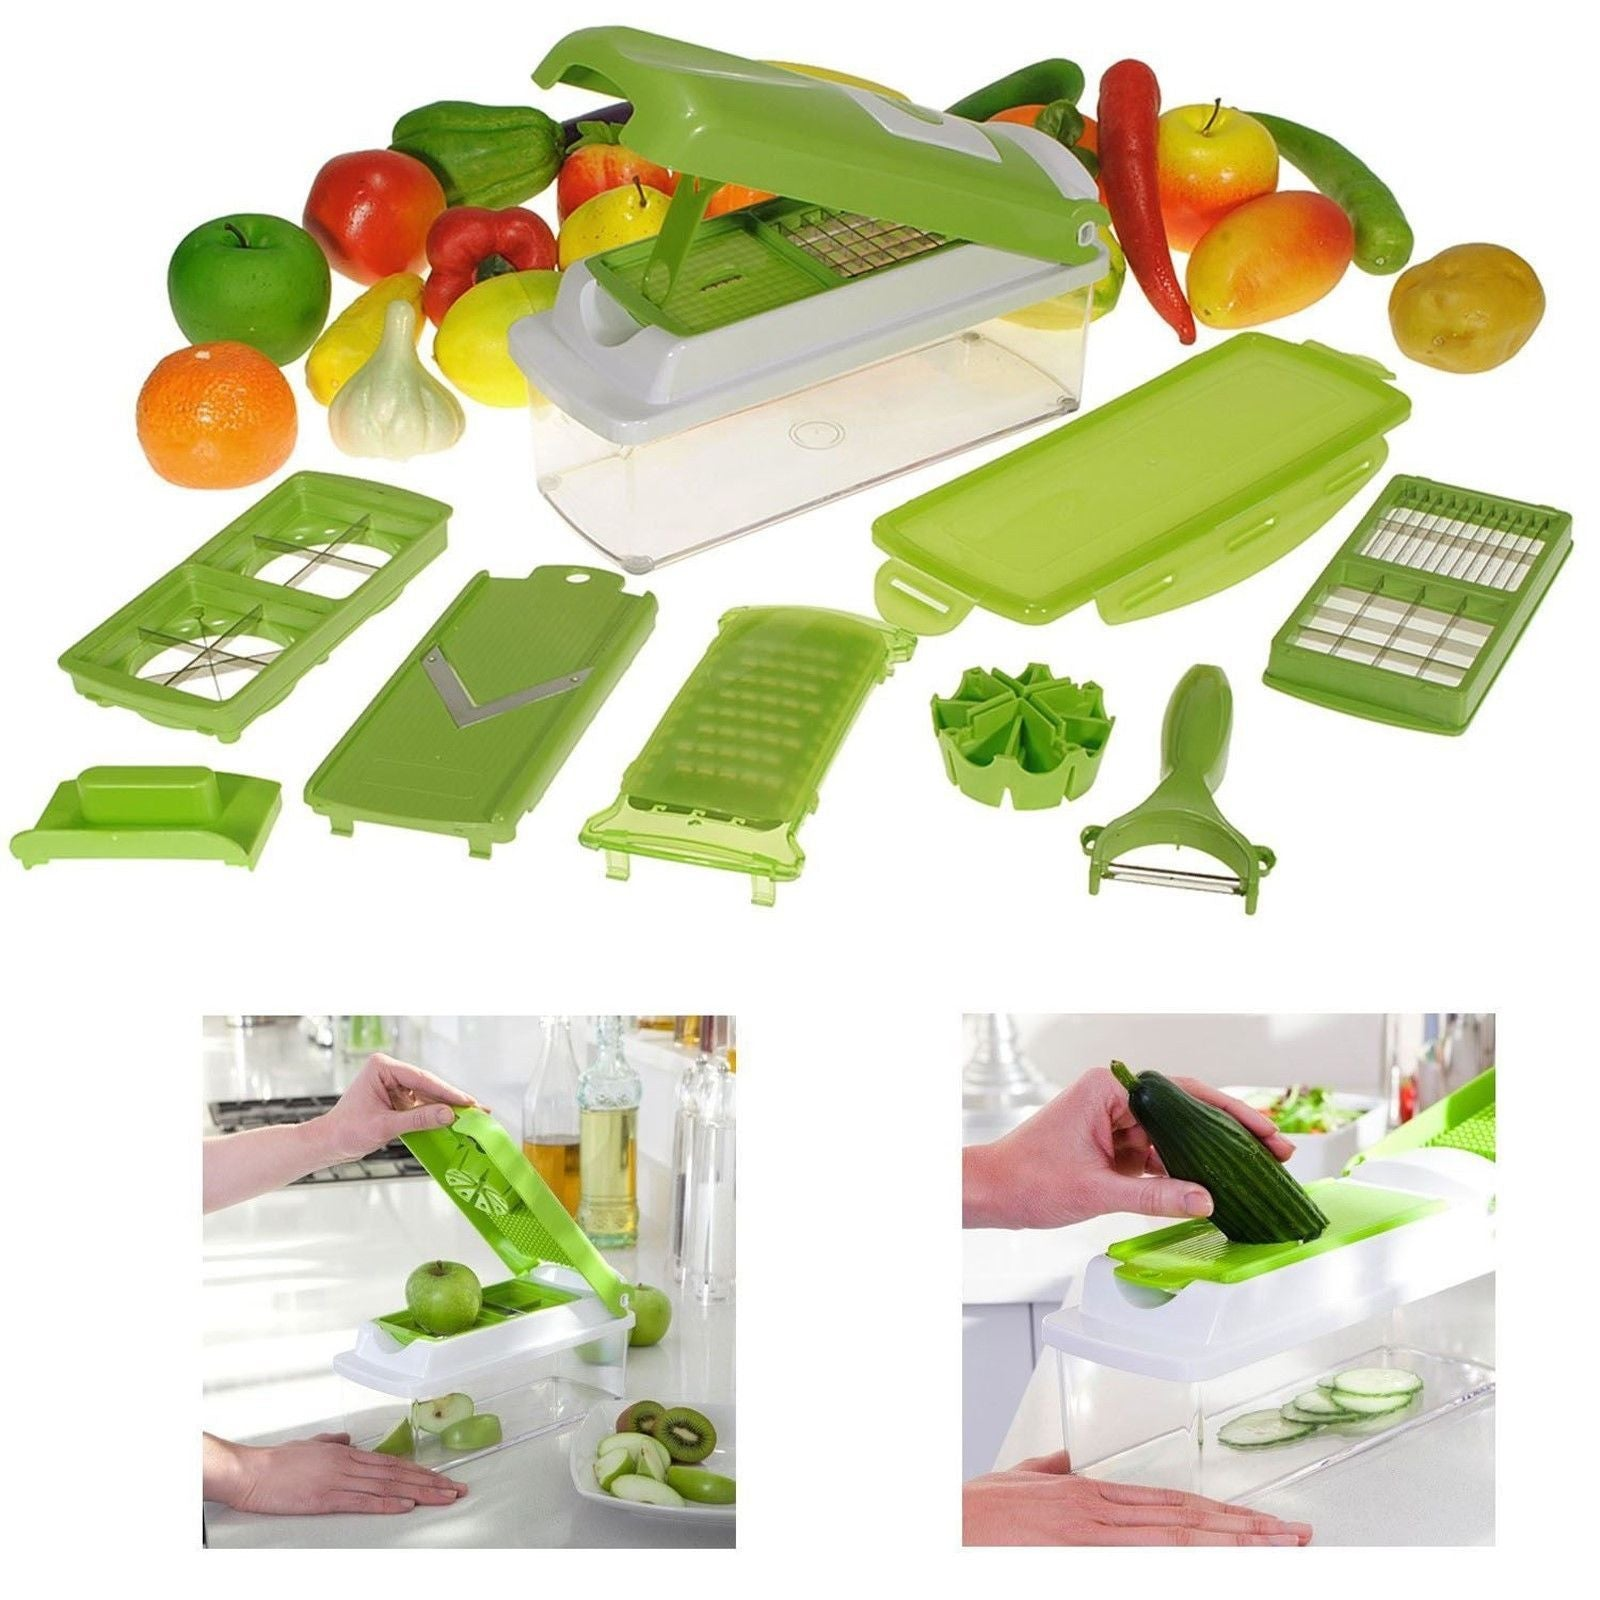 DELUXE SLICER DICER FRUIT VEGETABLE FOOD SALAD CHOPPER CUTTER PEELER GRATER